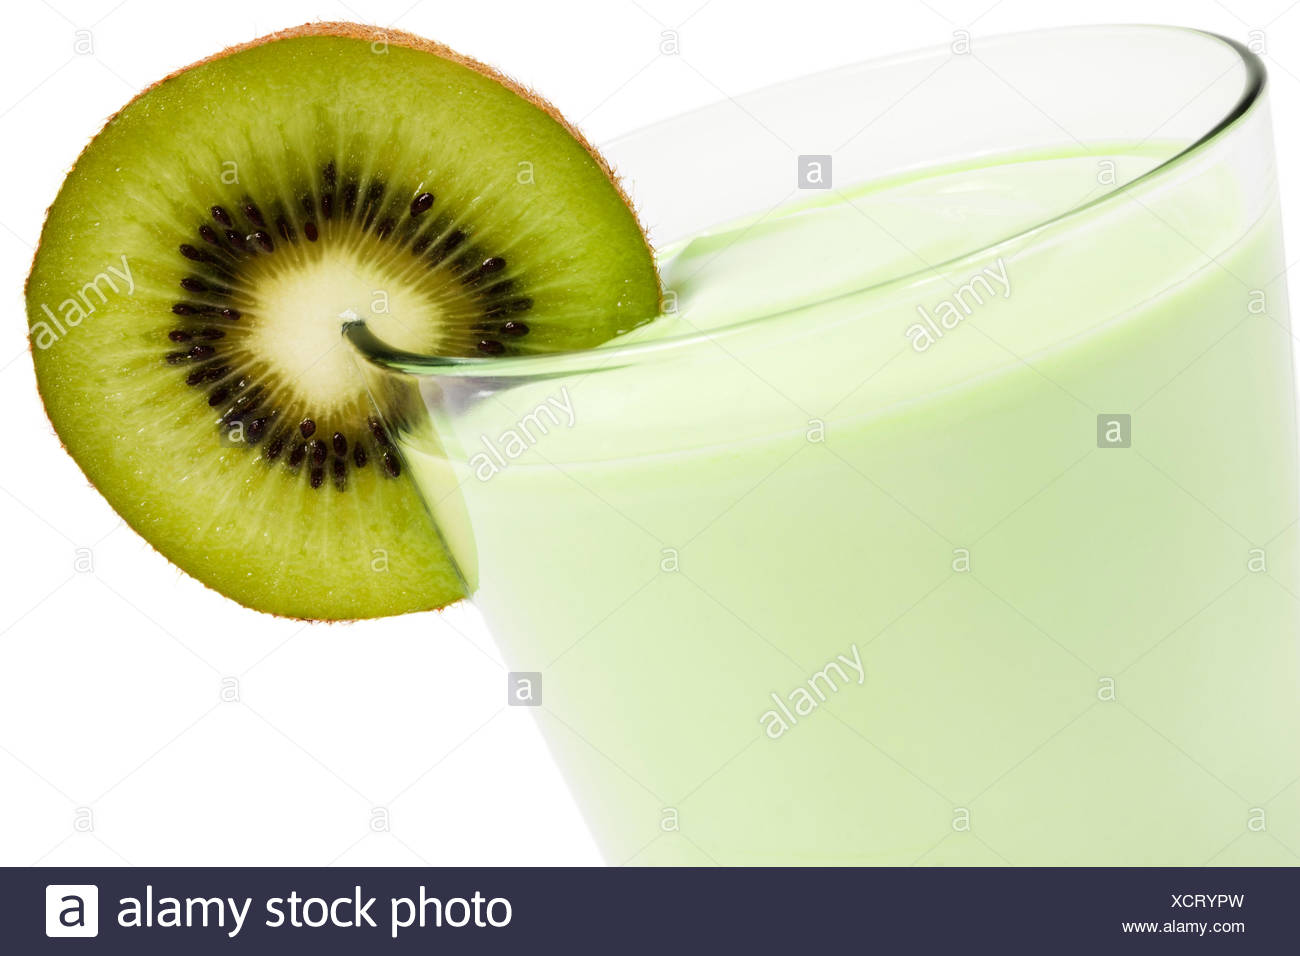 kiwi milkshake diagonally - Stock Image